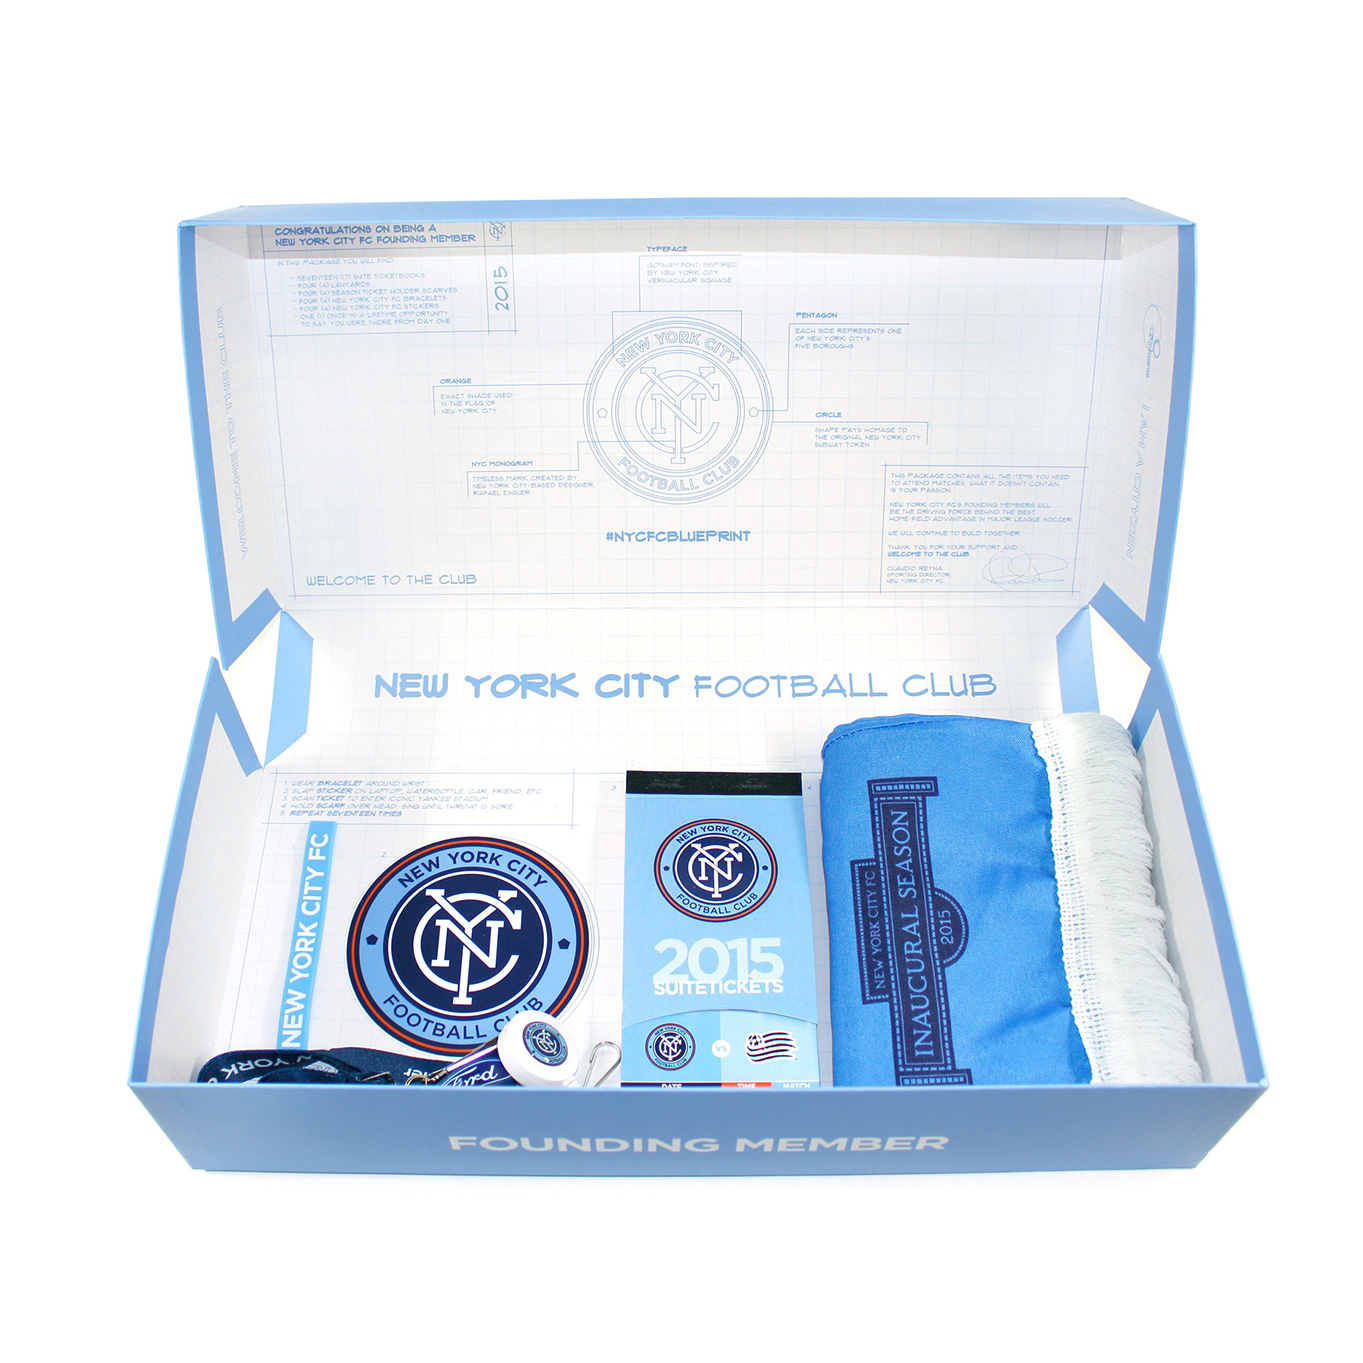 NYCFC Season Ticket Holder Box Packaging